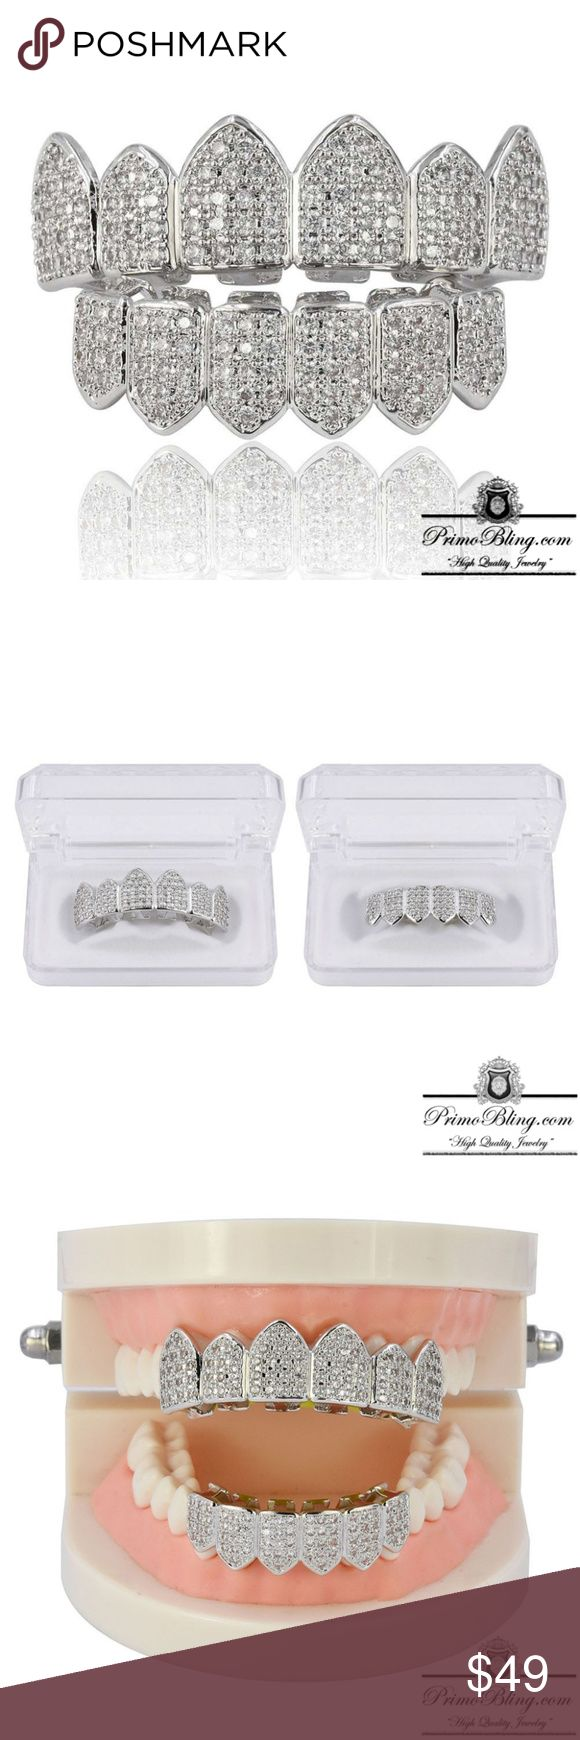 Silver Iced Out Bling Hip Hop Gangster Grillz Set These Hip Hop Grillz are very high quality with a shine that can be seen a mile away! If your looking for superior quality hip hop jewelry than this is the set for you!  1x Molding Kit included  Micro Pave Lab simulated CZ primobling Accessories Jewelry